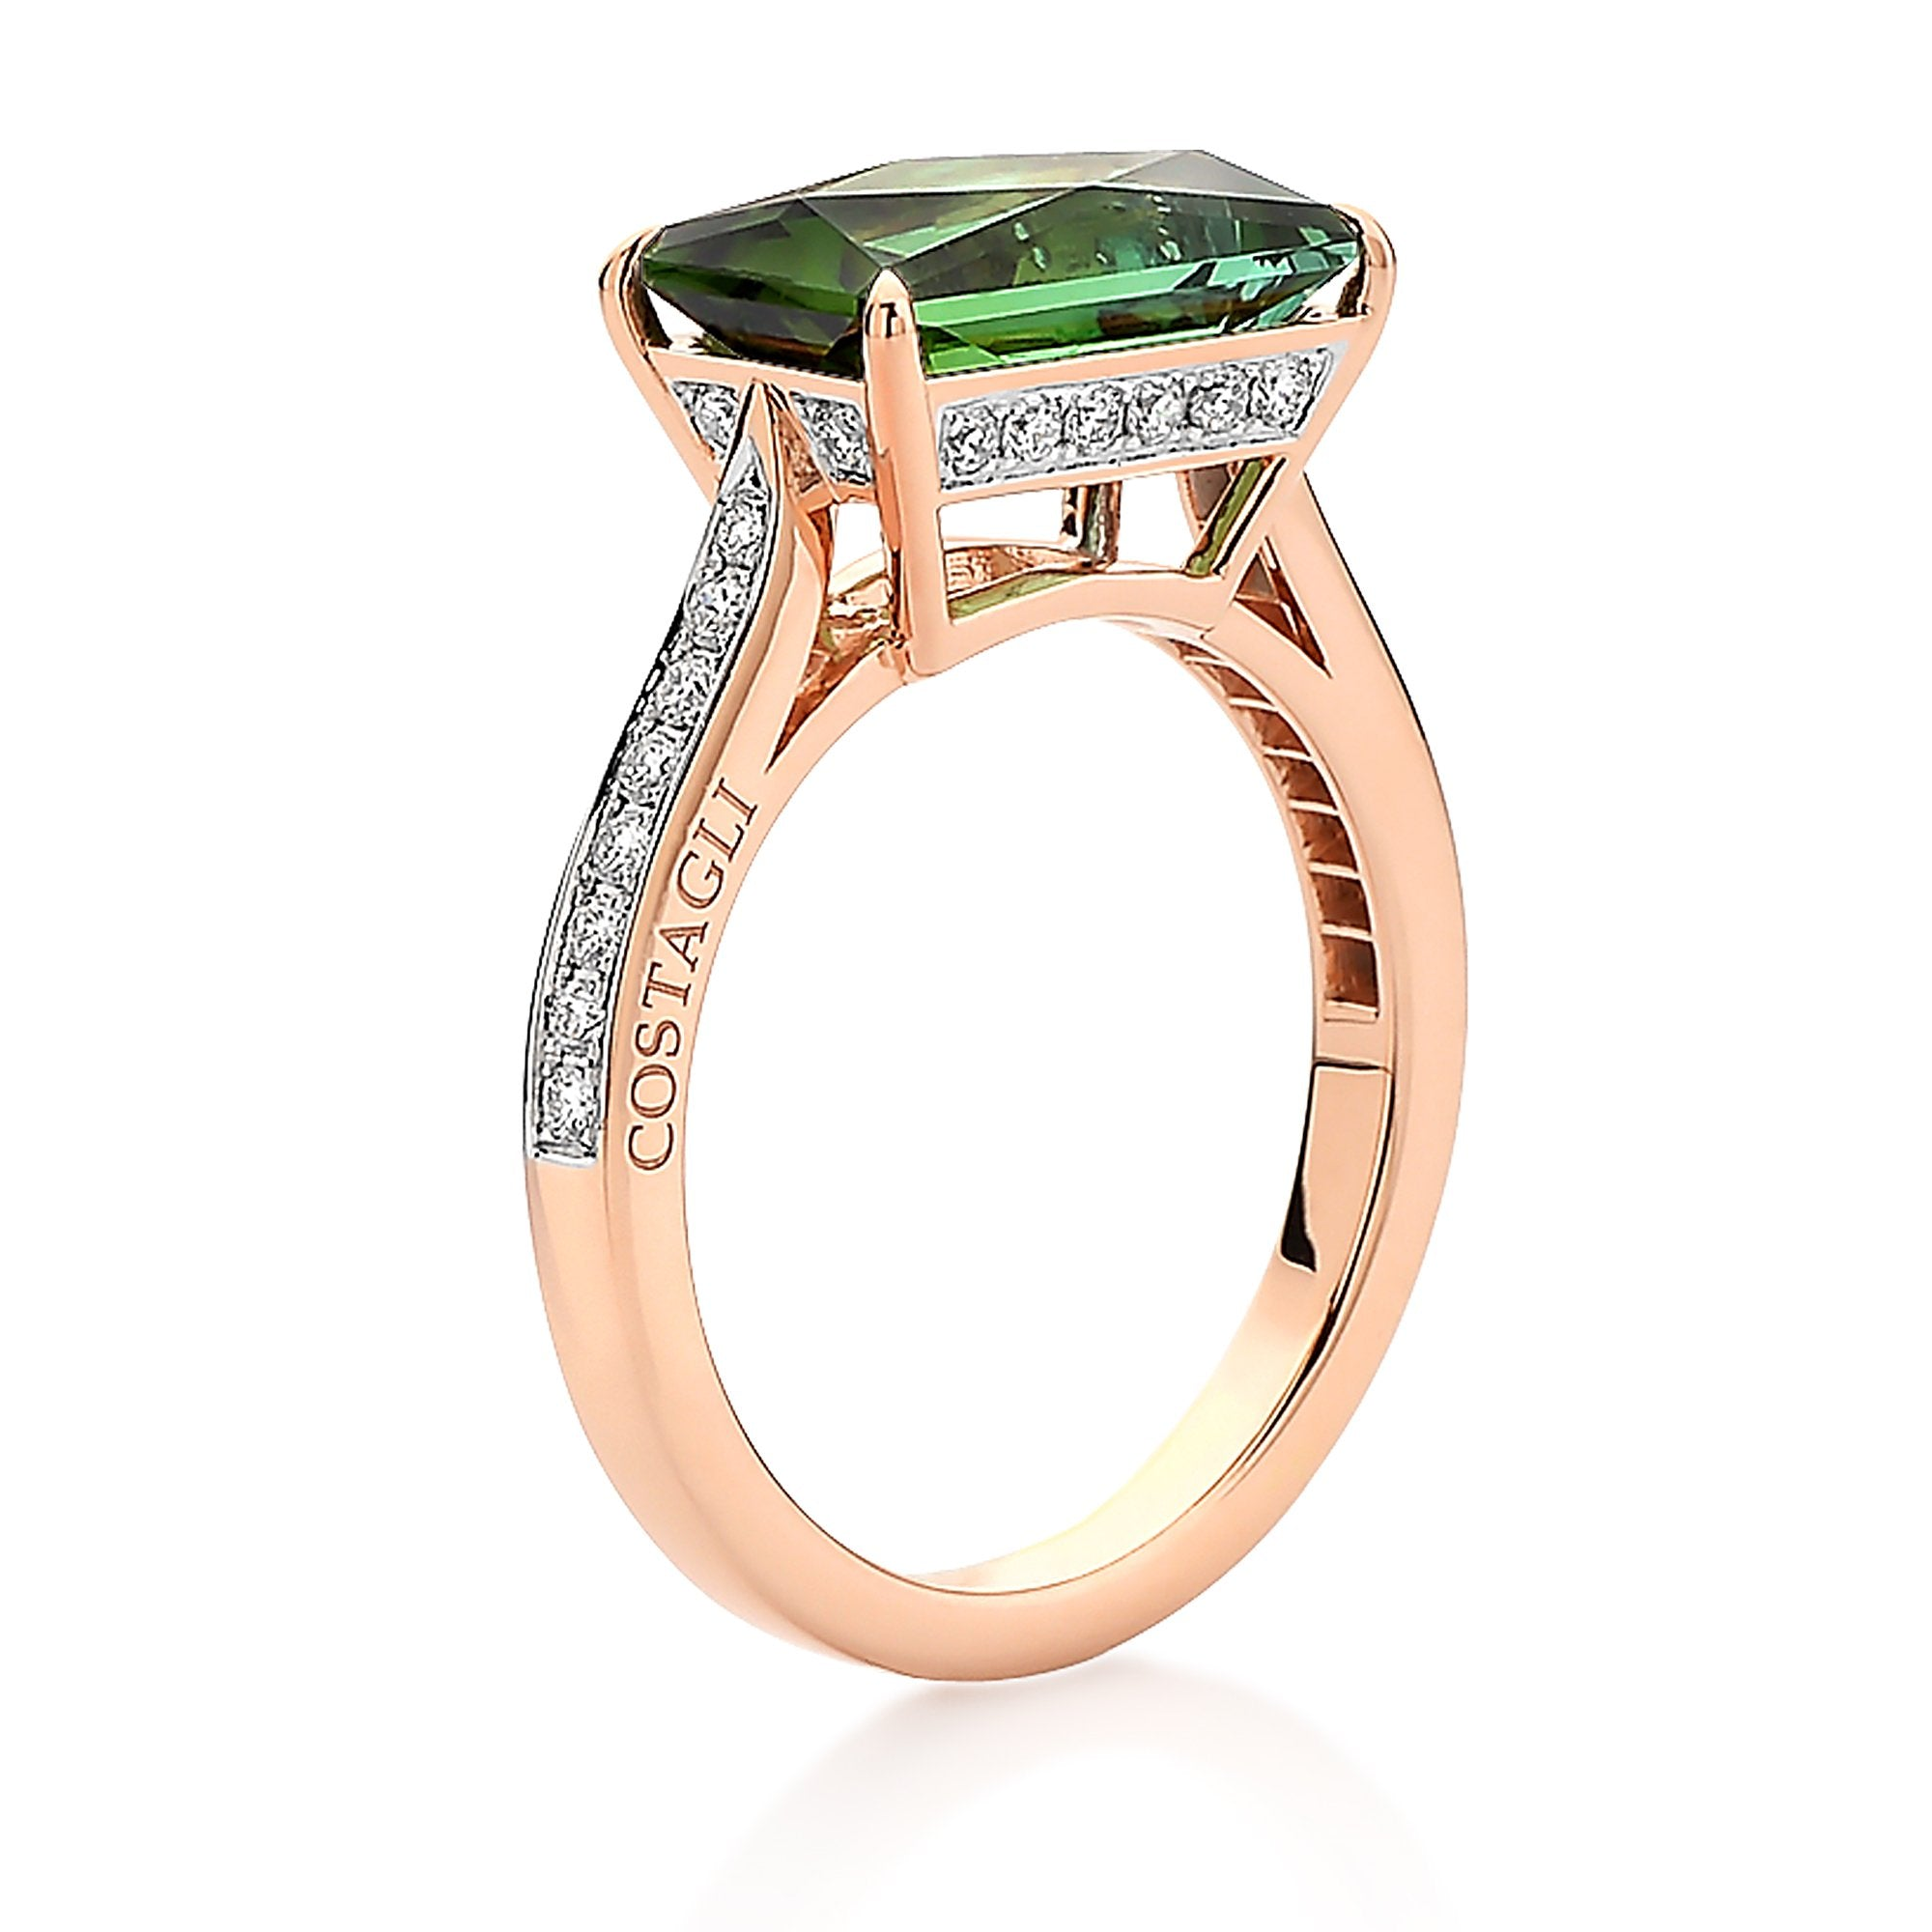 jewelry gold oval jupiter diamond sku categories tourmaline rings inc tags shing gemstone color green collections side product white ring on halo